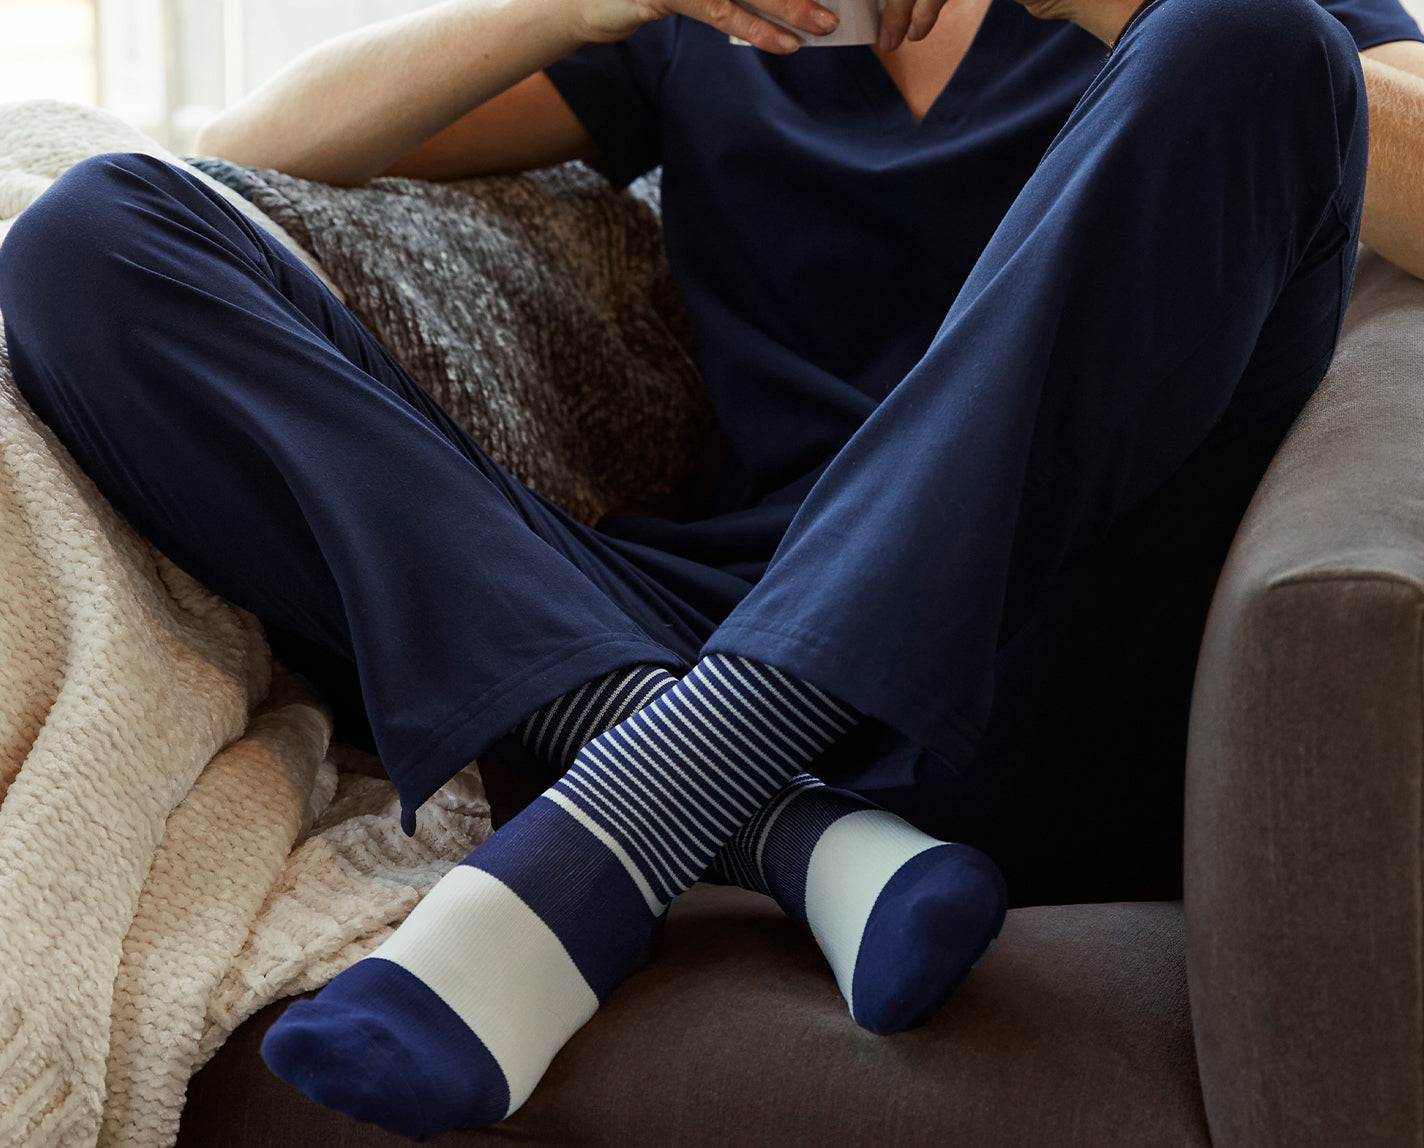 Show your true stripes! Our Navy Double Stripe 100% Awesome Compression Socks conveniently match a whole bunch of your FIGS, plus they help relieve tired and achy legs. They're also breathable and ridiculously soft.